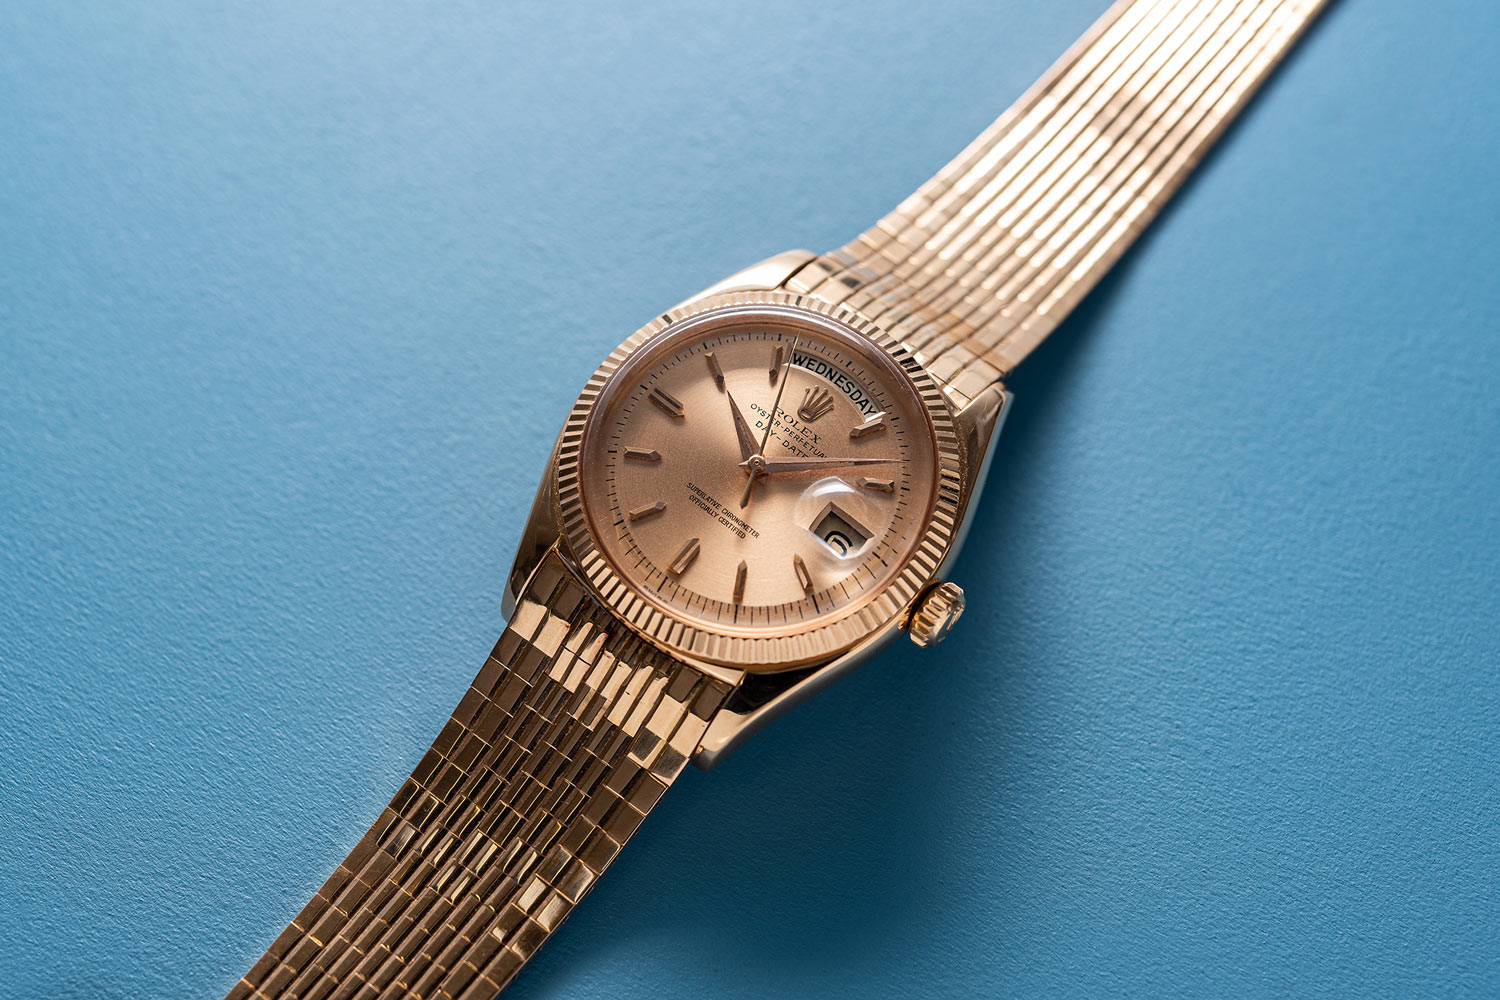 Lot 243: Rolex Ref. 1803. A very rare and impressive pink gold wristwatch with center seconds, day, date and brick link bracelet (Image: Chris Beccan)